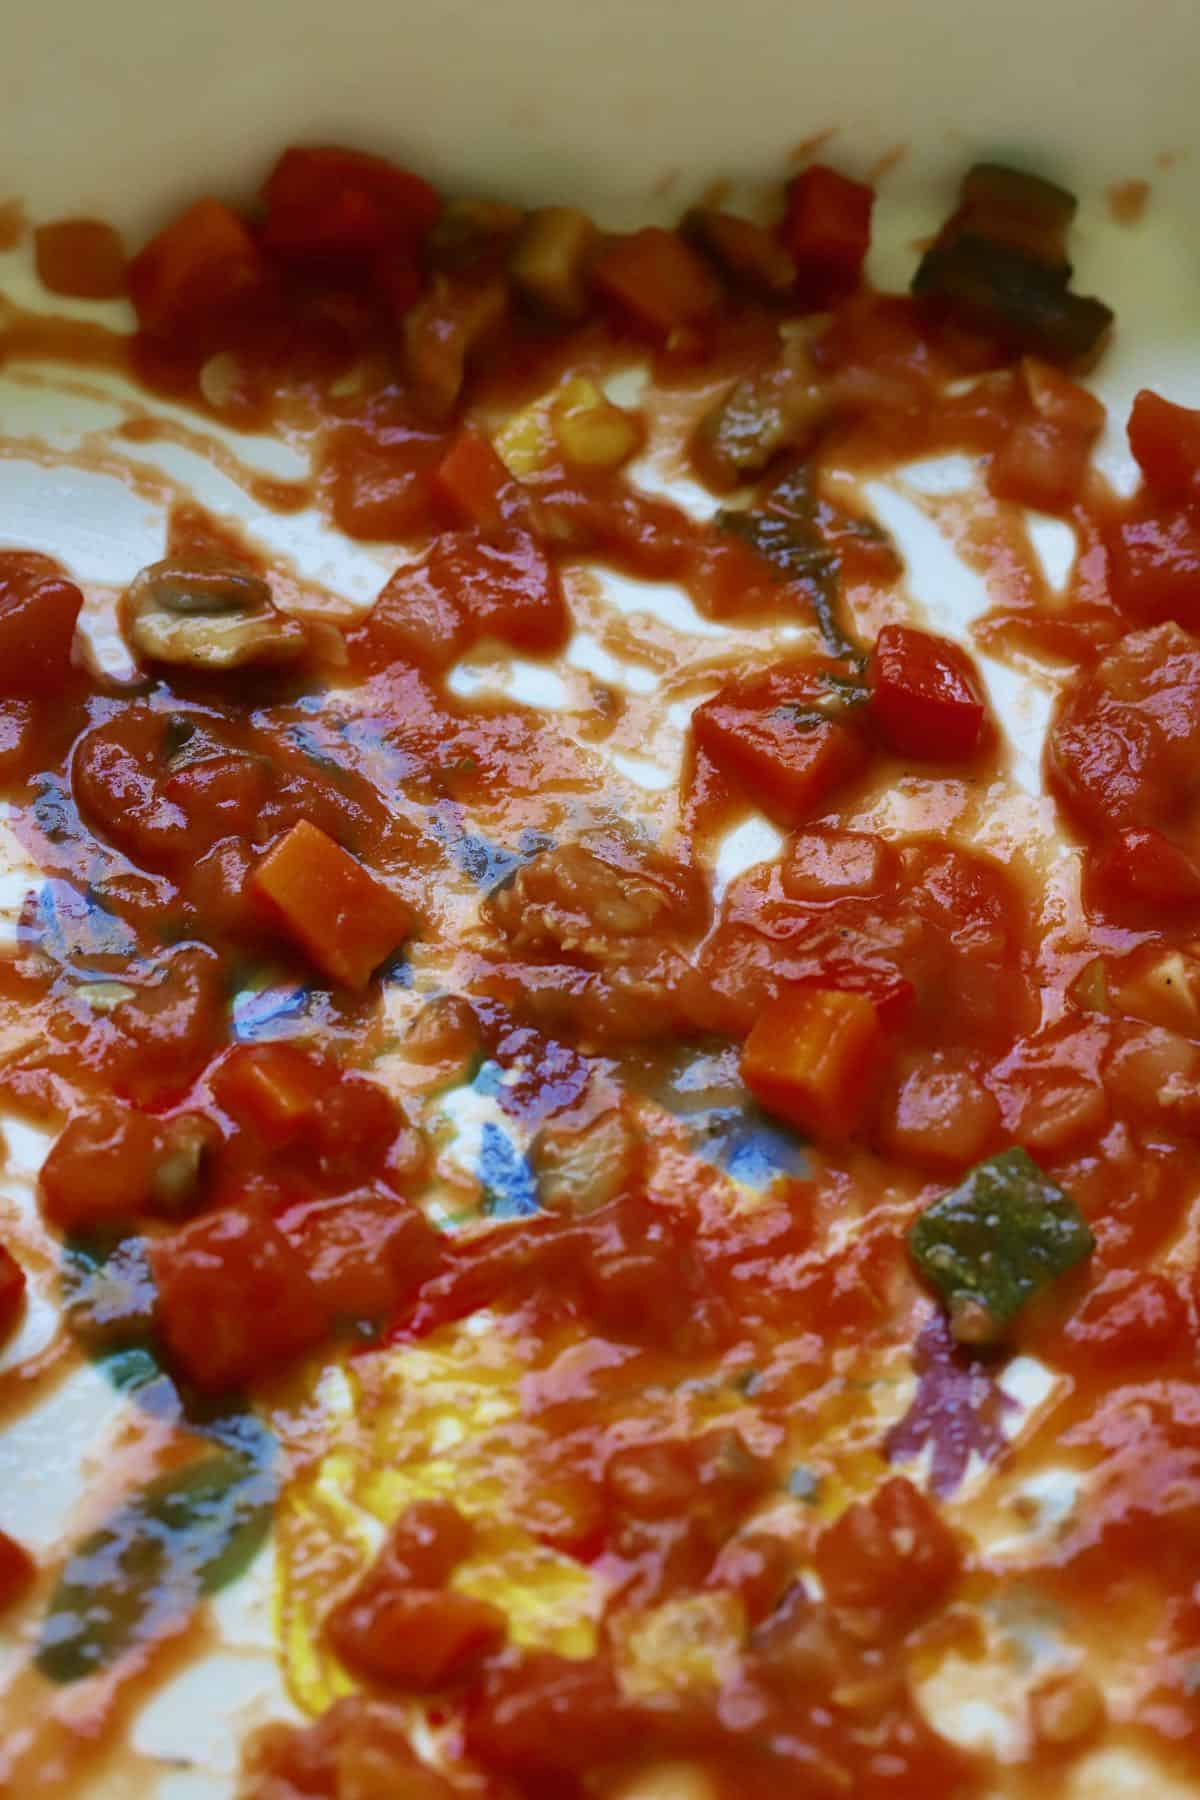 Tomato sauce with vegetables in the bottom of a baking dish.